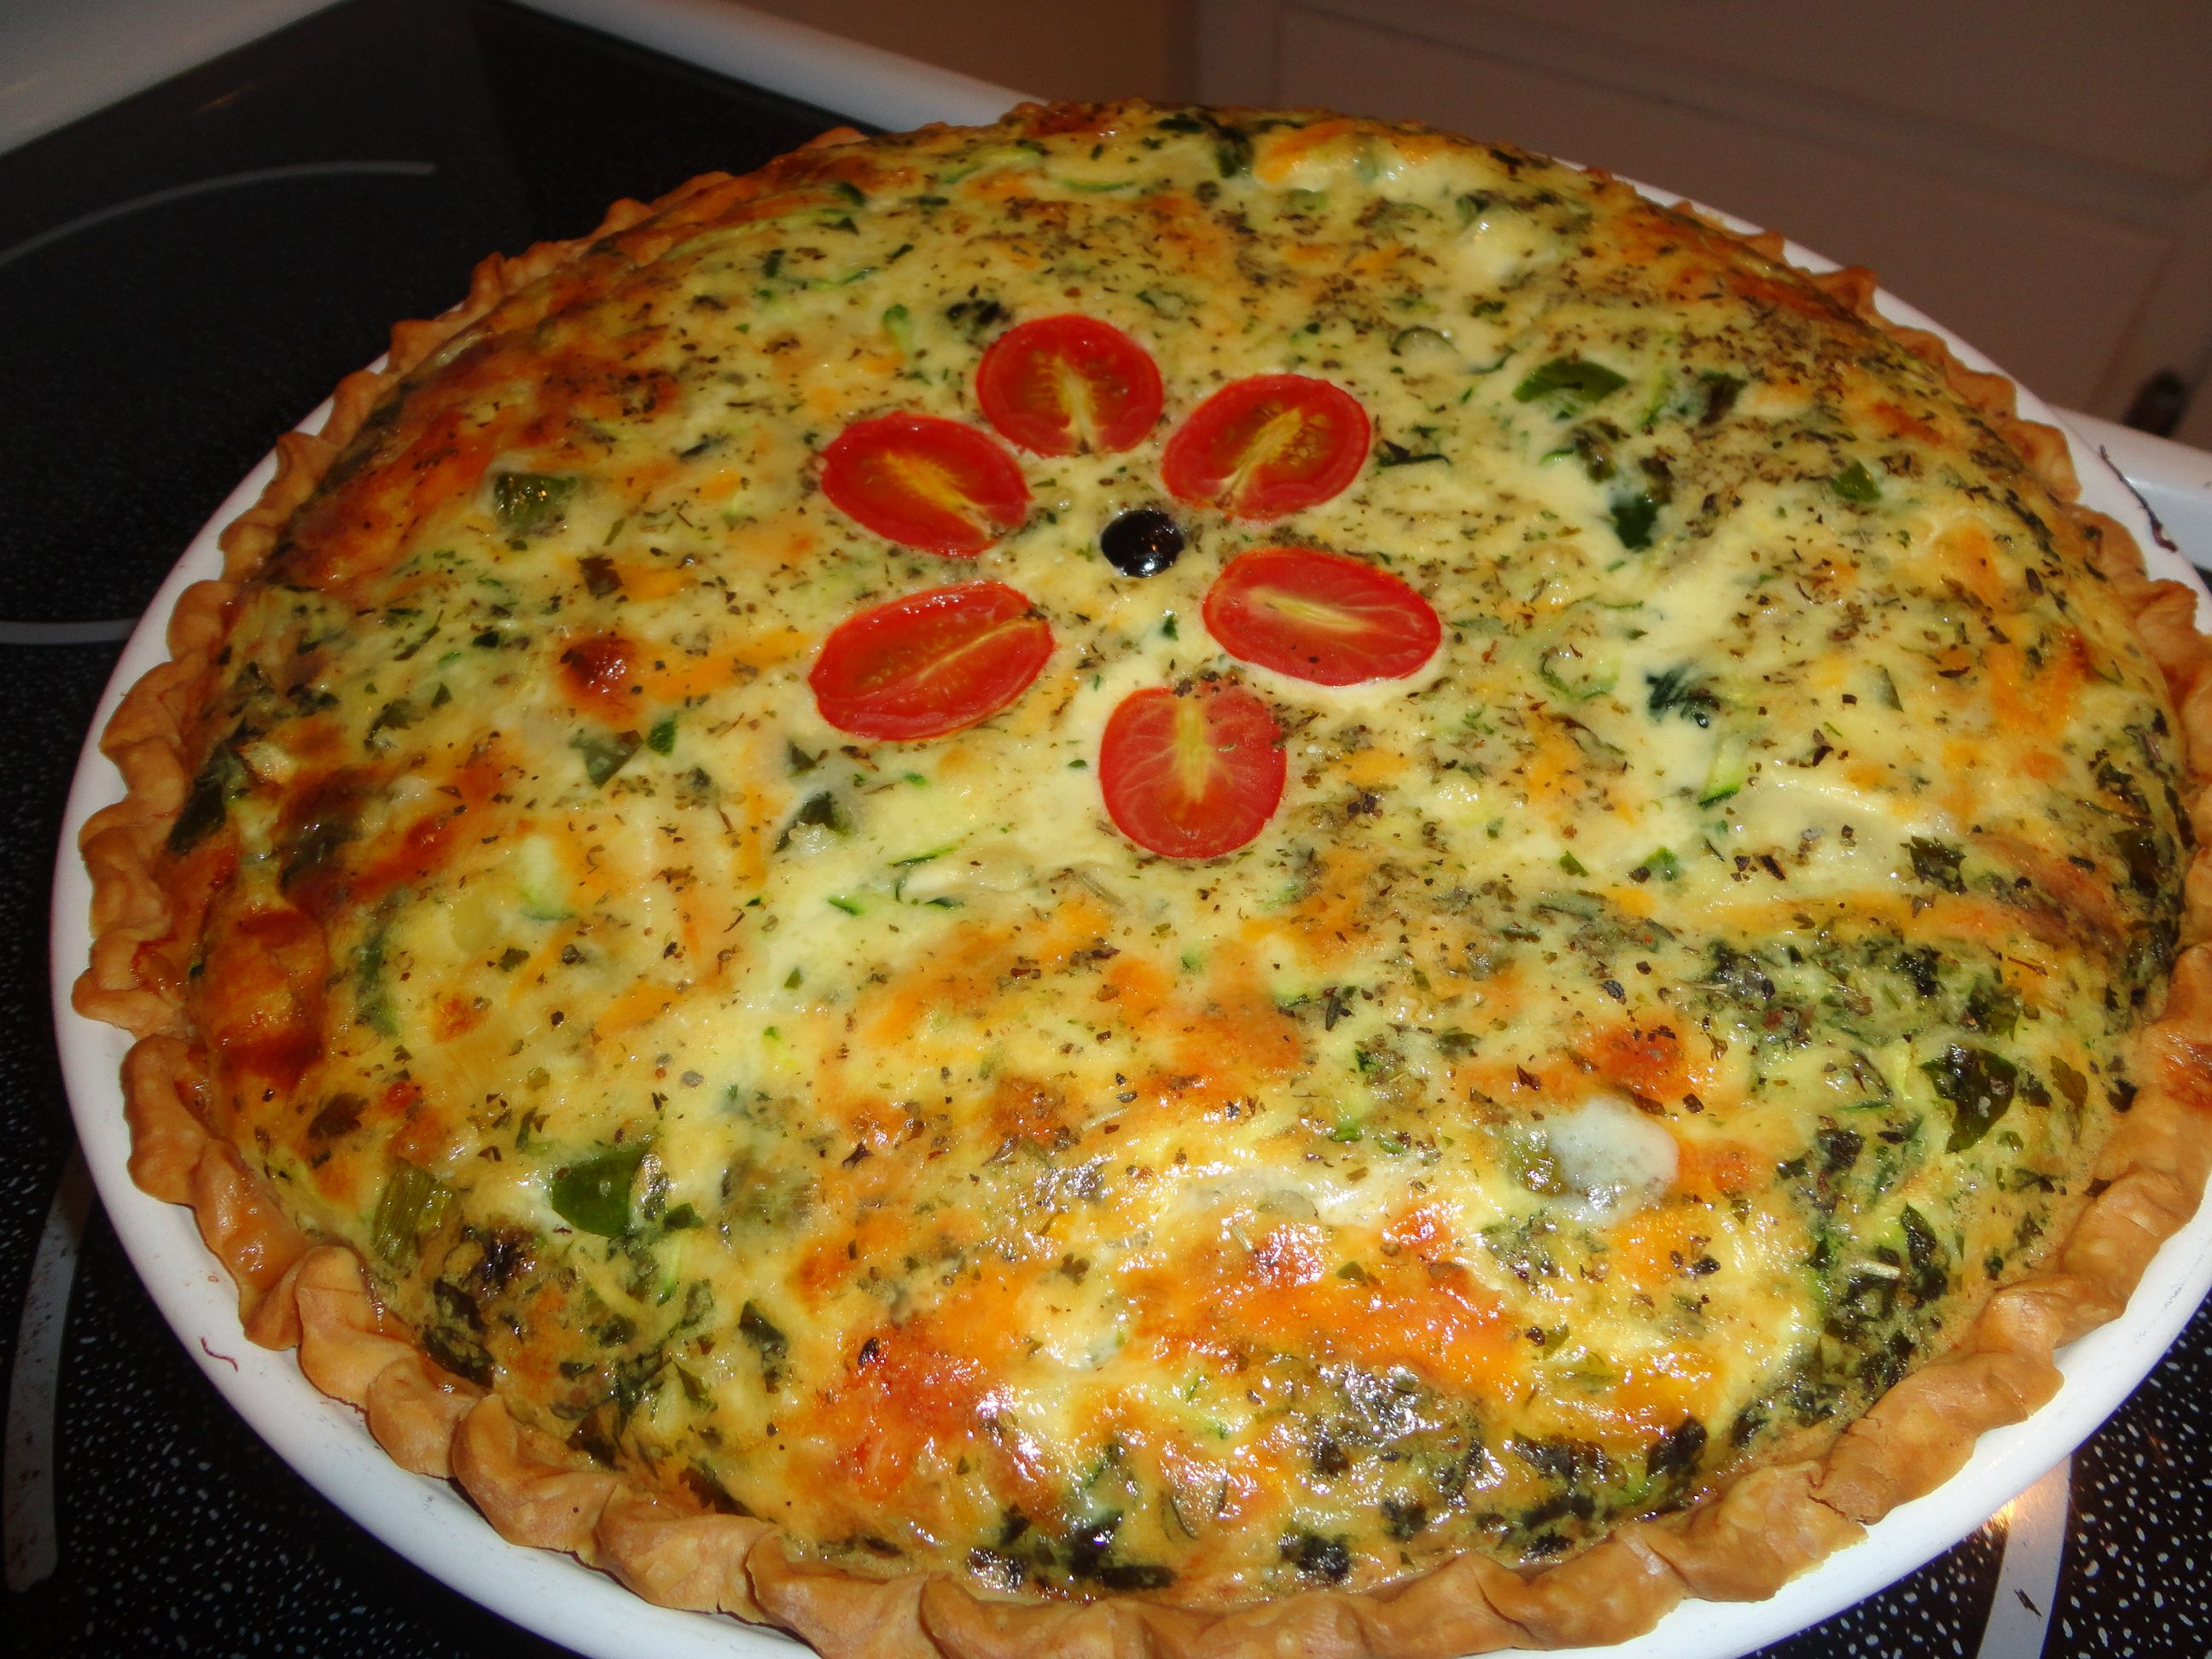 Leek and Asparagus Quiche, Joy the Baker, with some additions to recipe